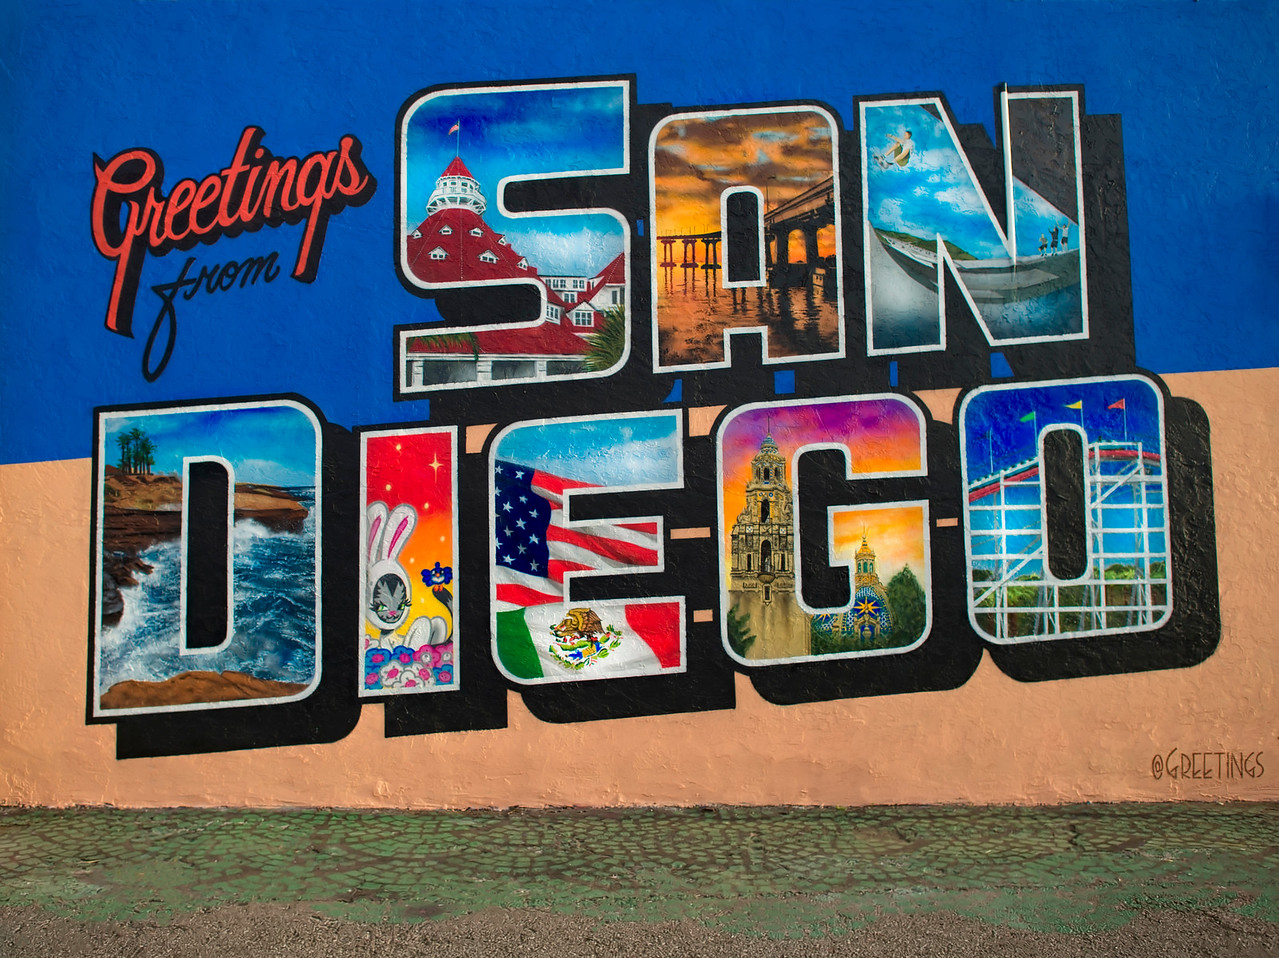 Greetings from San Diego Mural 30th and El Cajon Blvd